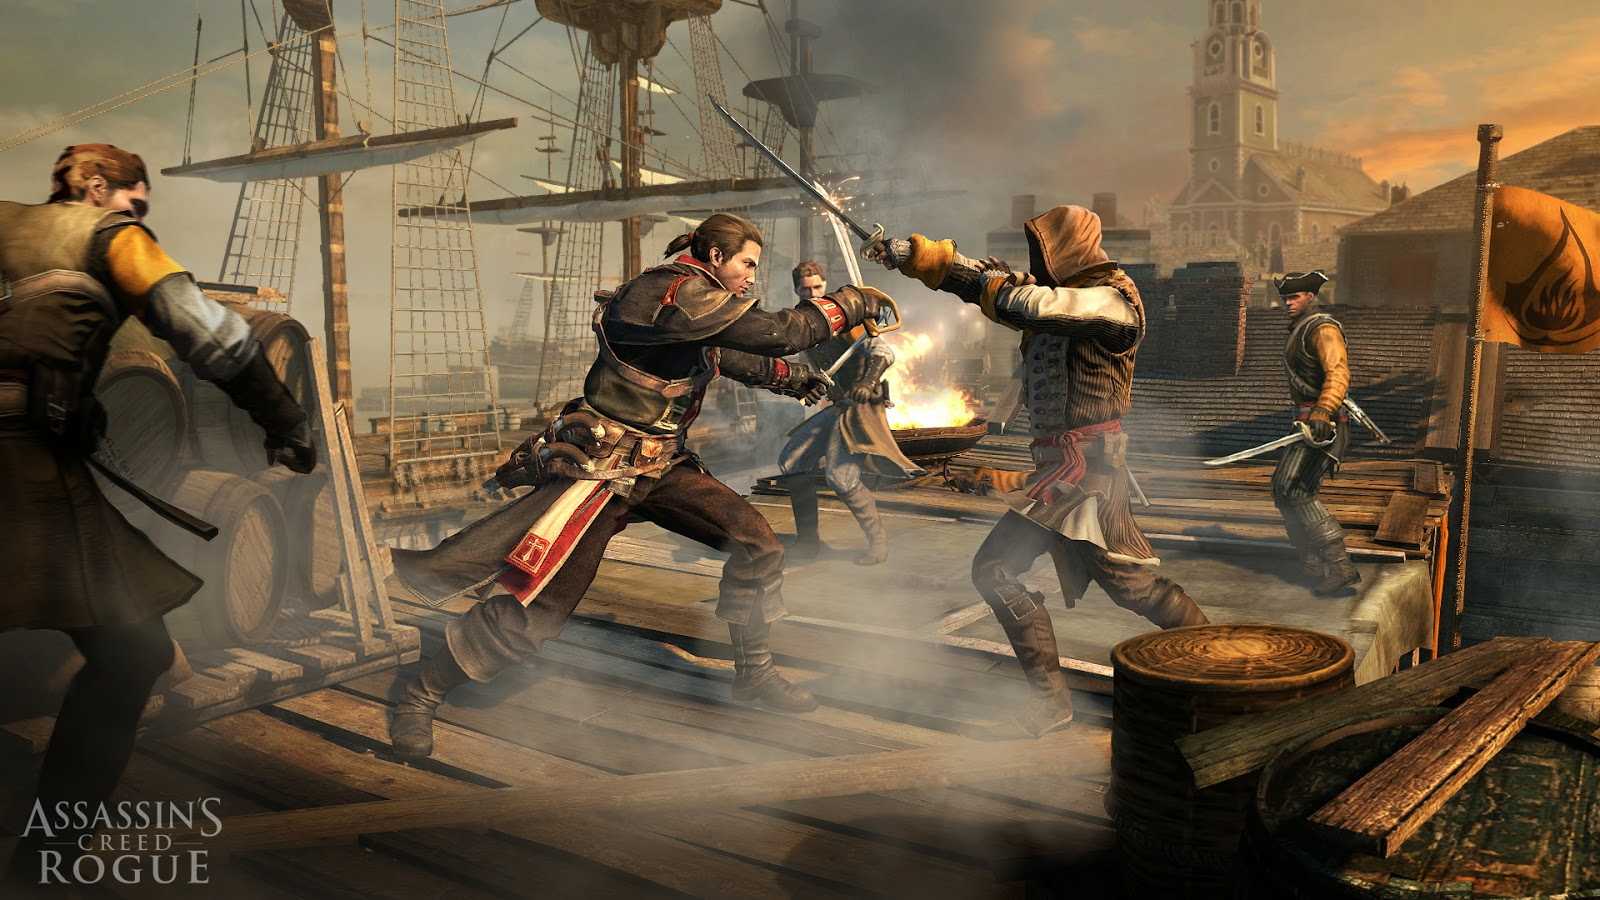 Download Assassins Creed Rogue Torrent PC 2015